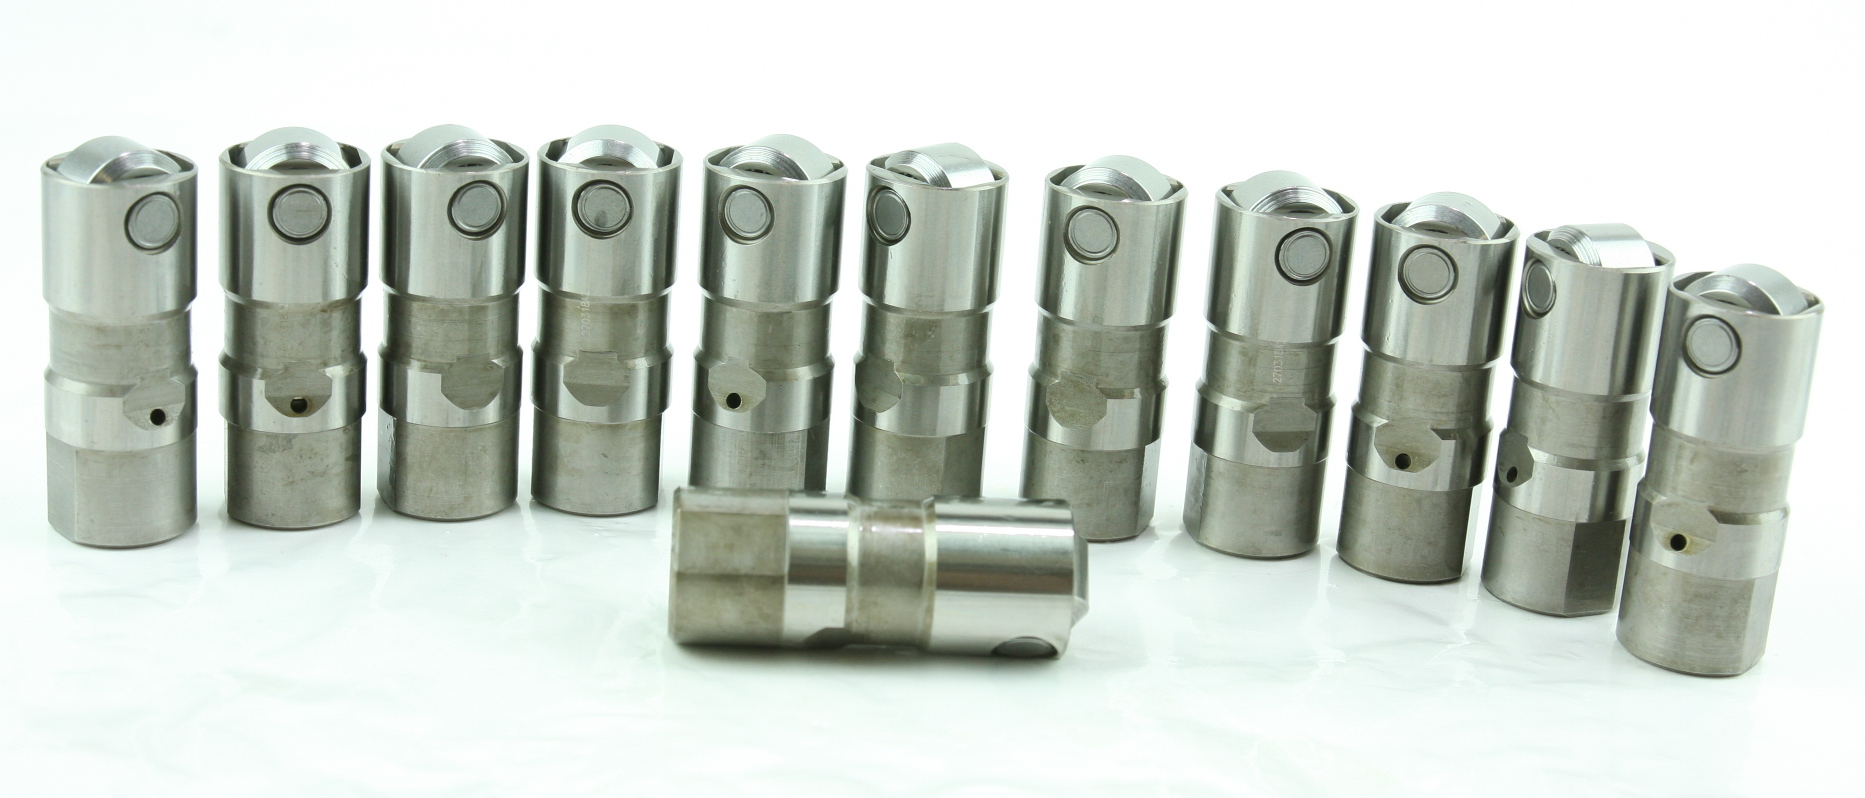 Set of 12 Genuine GM Roller Hydraulic Valve Lifters OEM 17120070 ACDelco HL118 - image 1